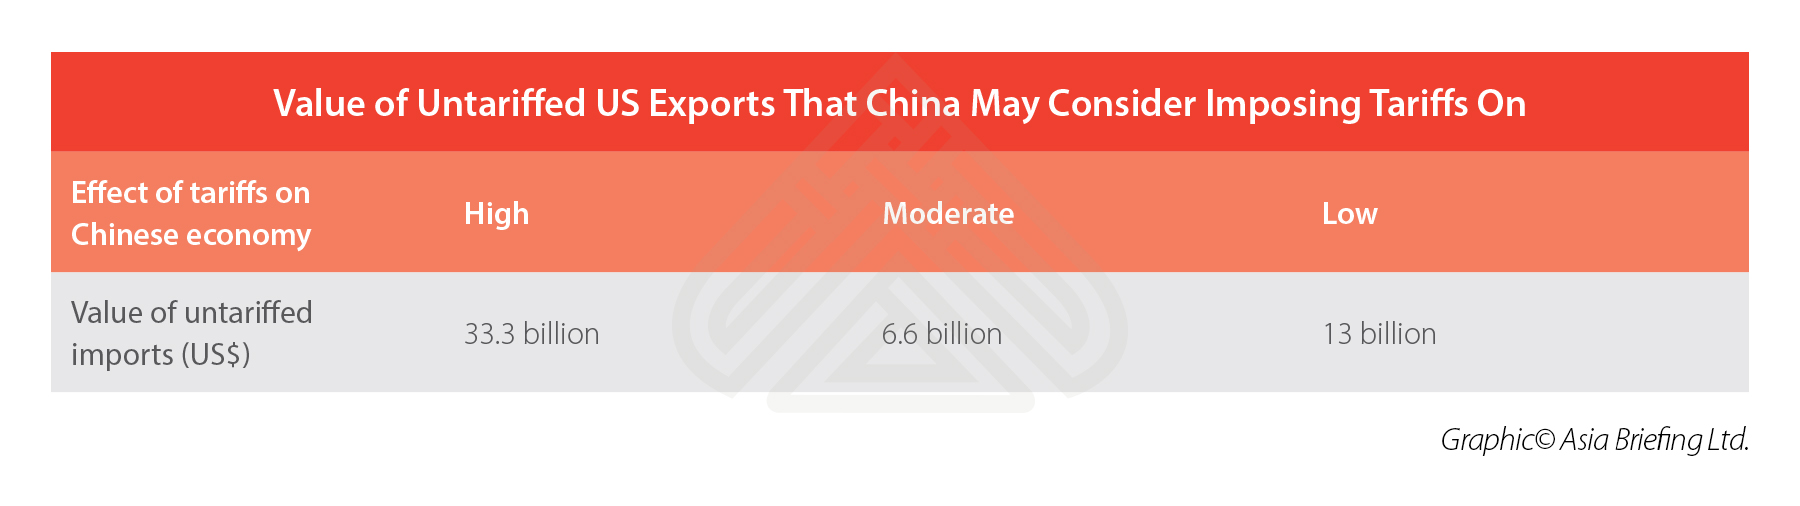 Untariffed-US-Exports-to-China